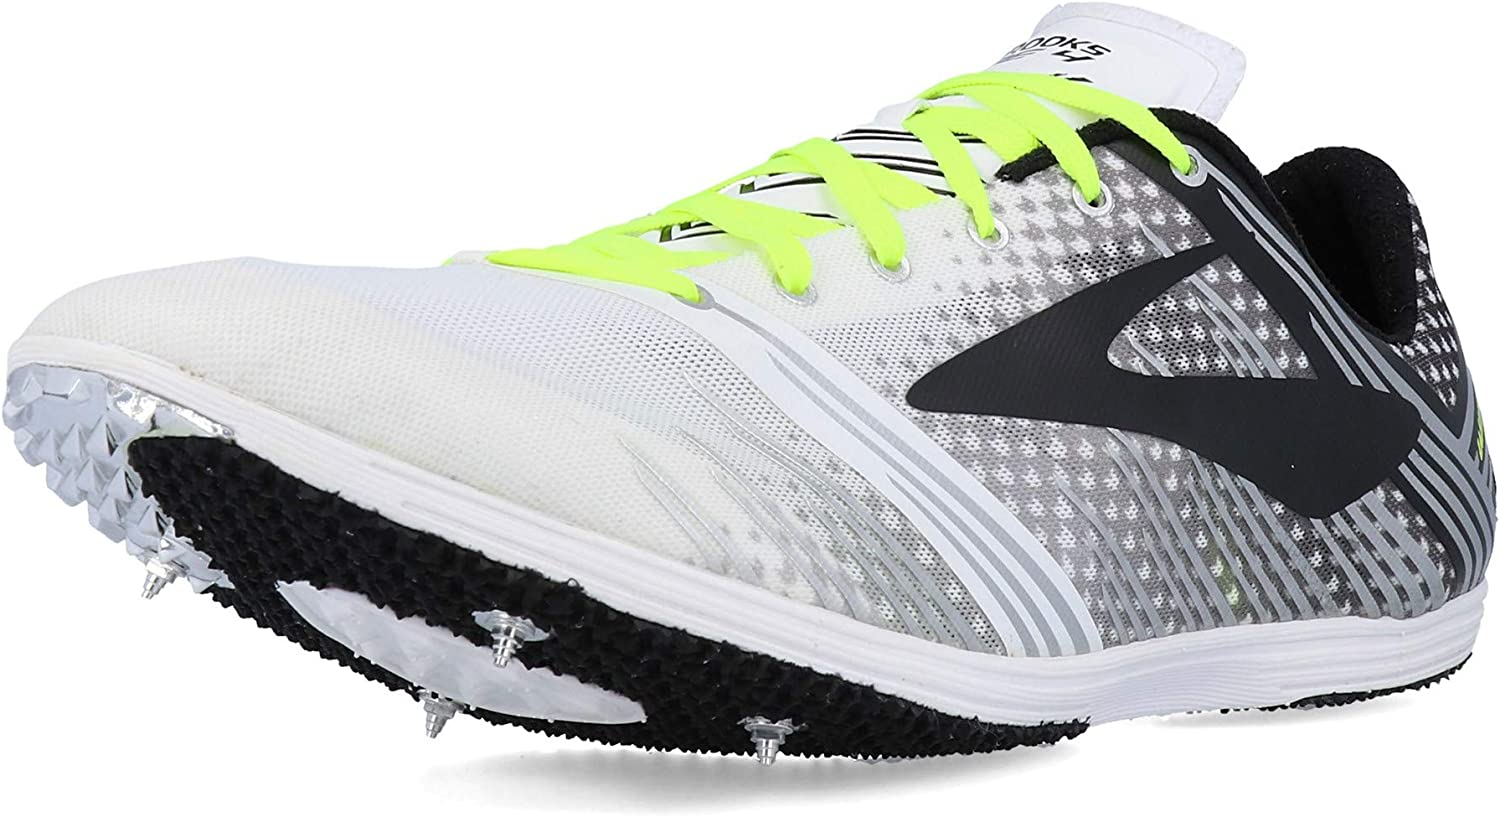 Brooks Wire 4 Zapatilla De Correr con Clavos: Amazon.es: Zapatos y complementos